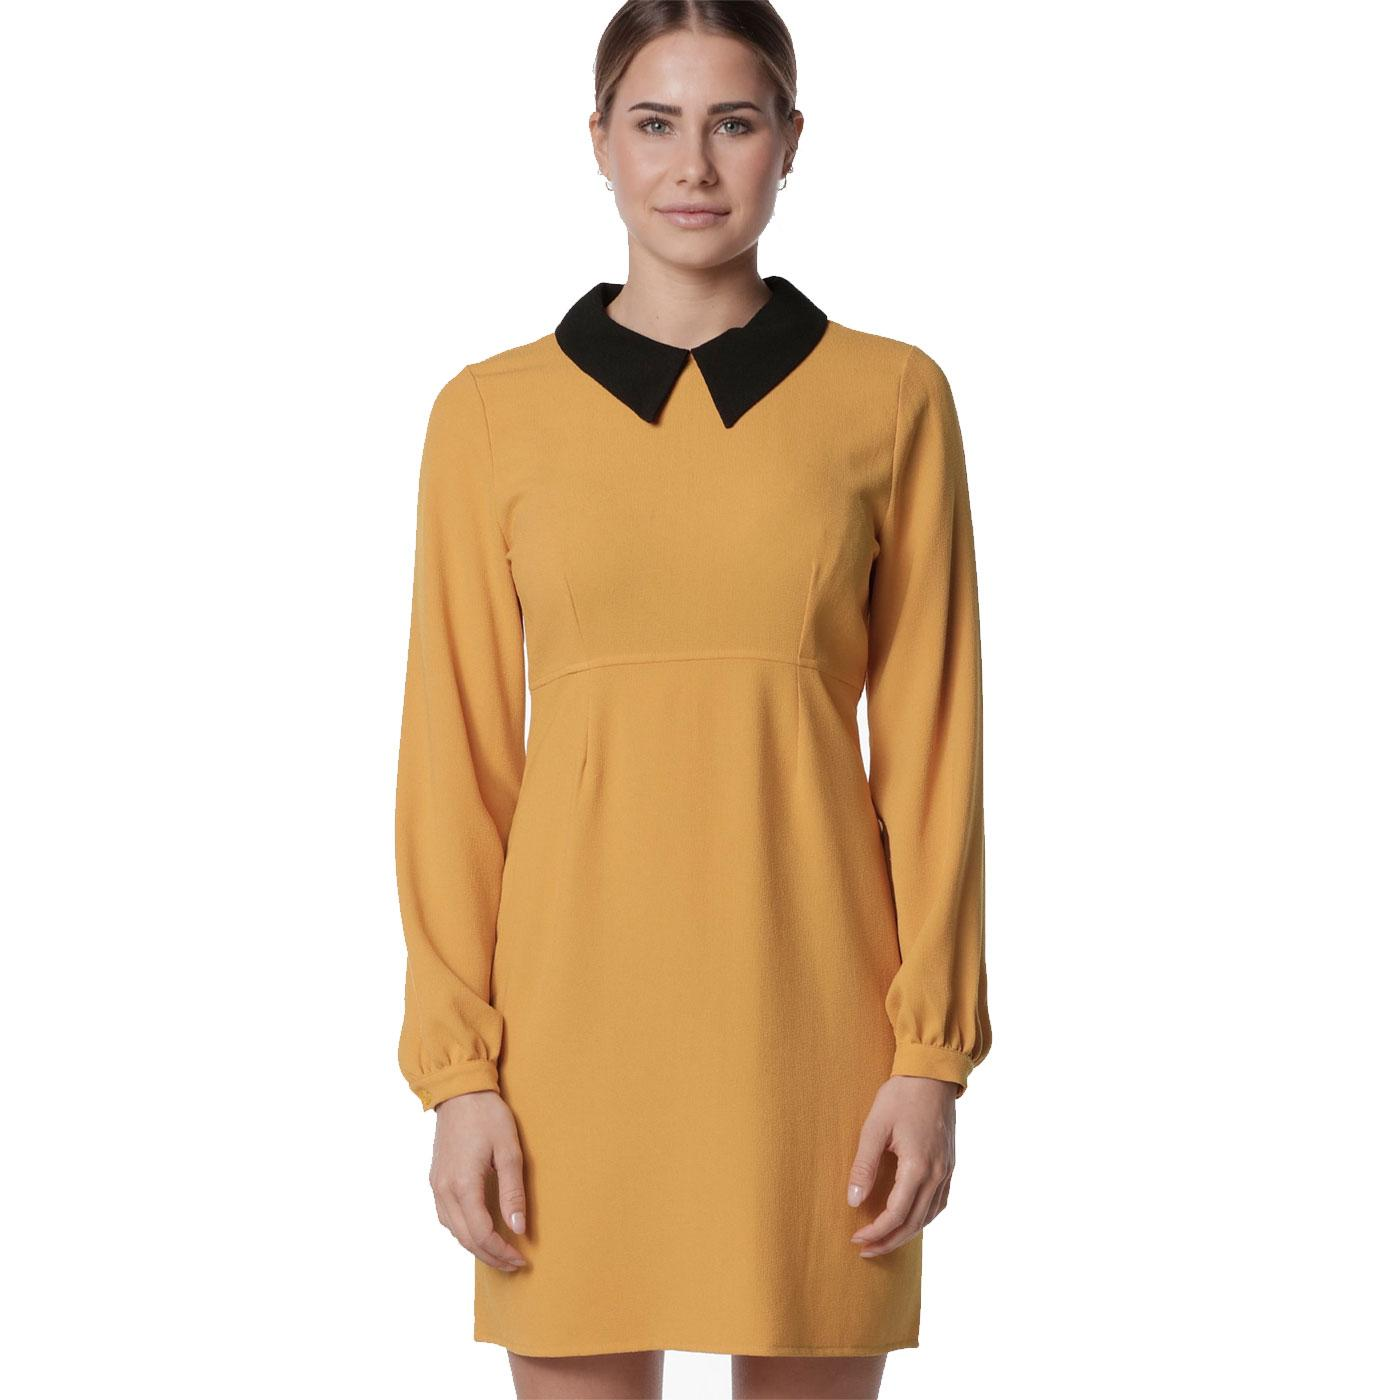 MADEMOISELLE YEYE Serving the Pie 60s Mod Dress